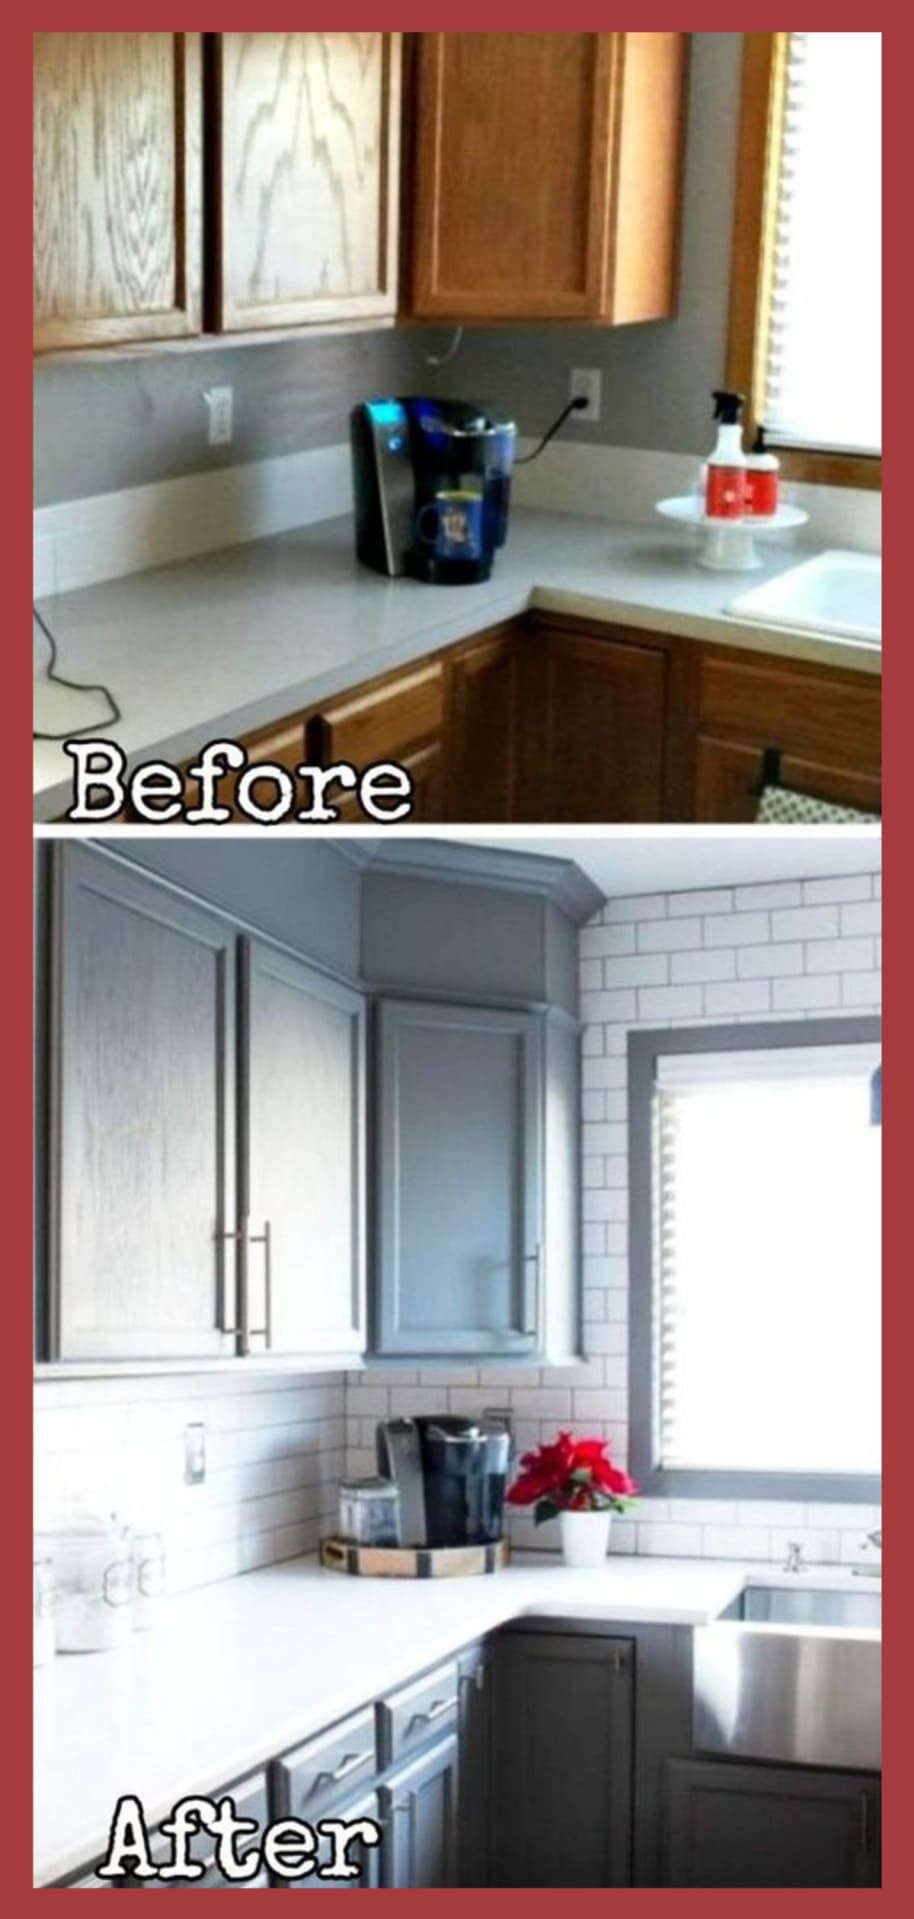 Ben Ellen S Kitchen Before After Pictures Kitchen Remodel Small Home Remodeling Contractors Home Remodeling Diy